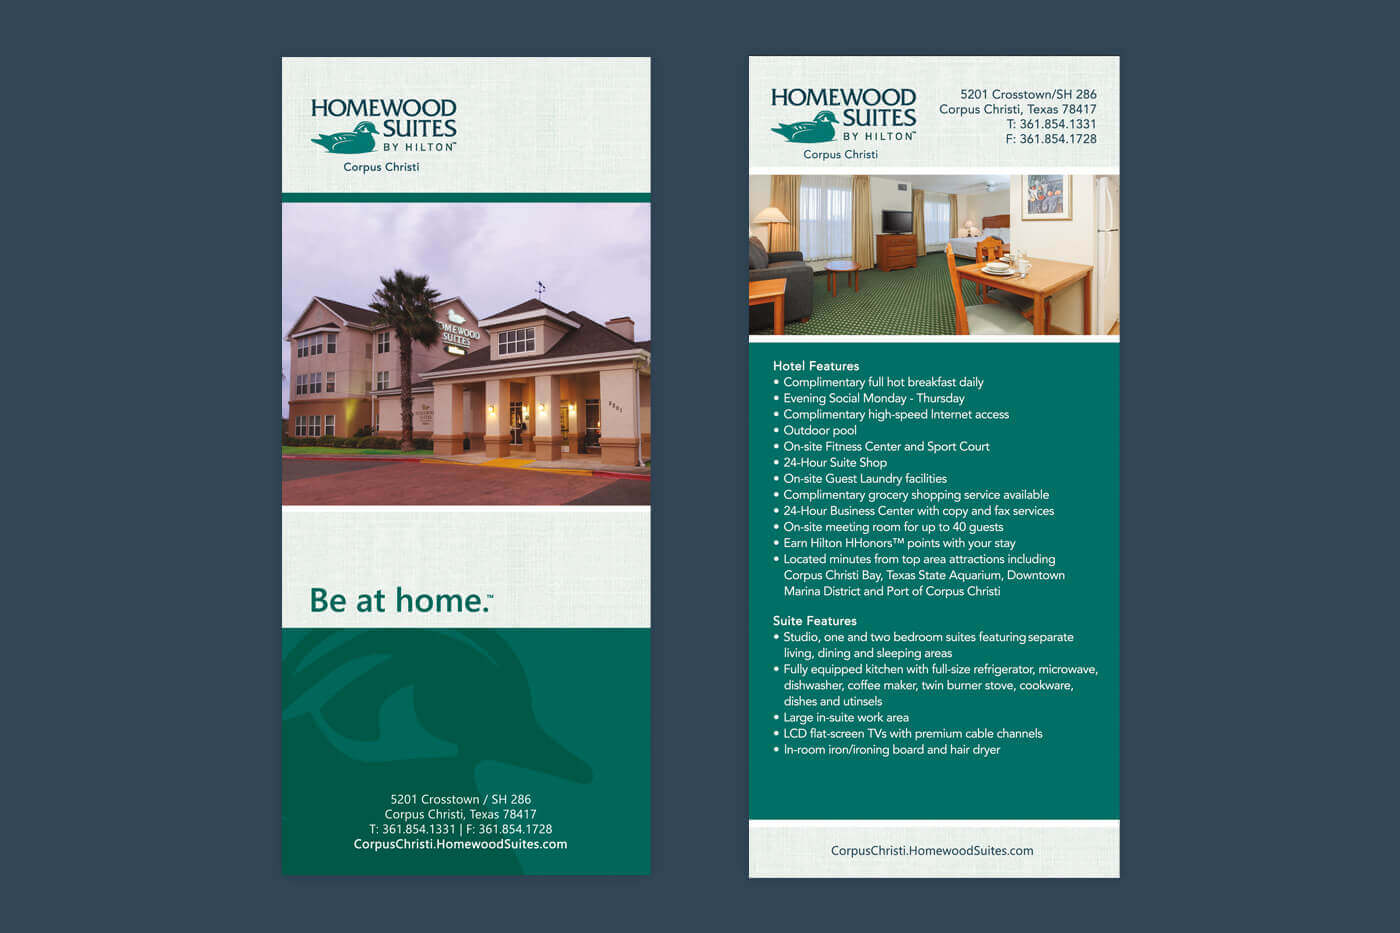 Marketing Collateral - Homewood Suites Corpus Christi Rackcard